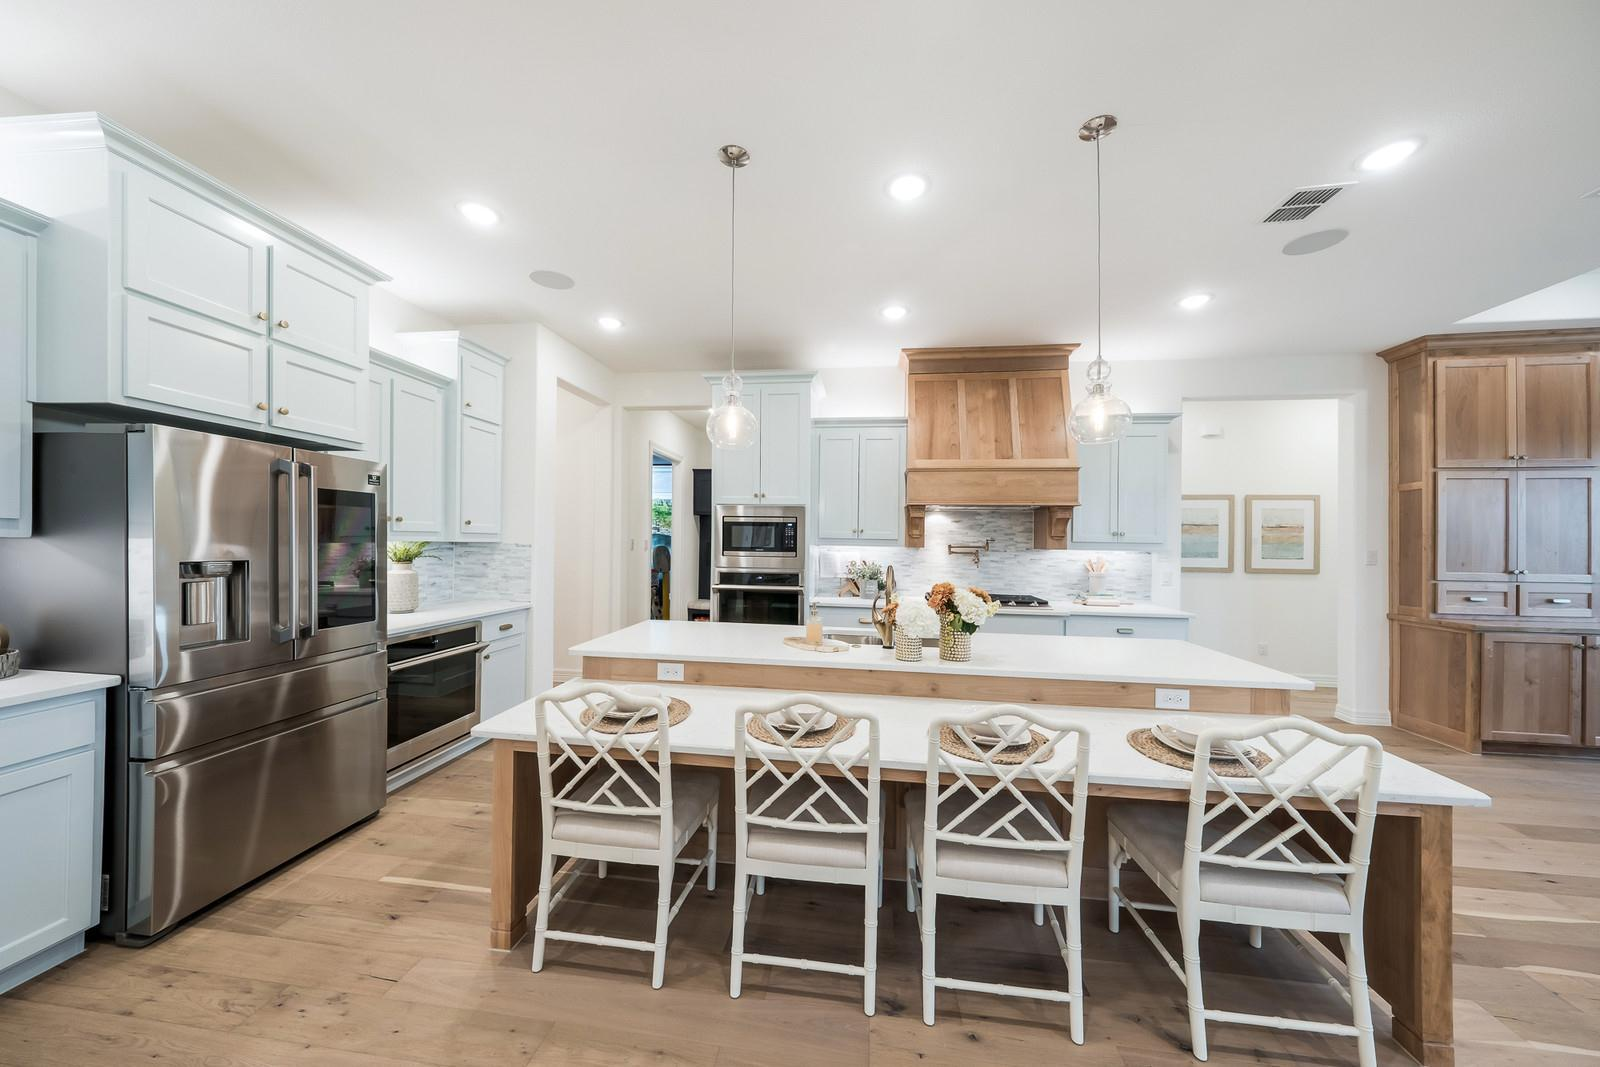 Kitchen featured in the Bella Rose 6201 By Risland Homes in Dallas, TX